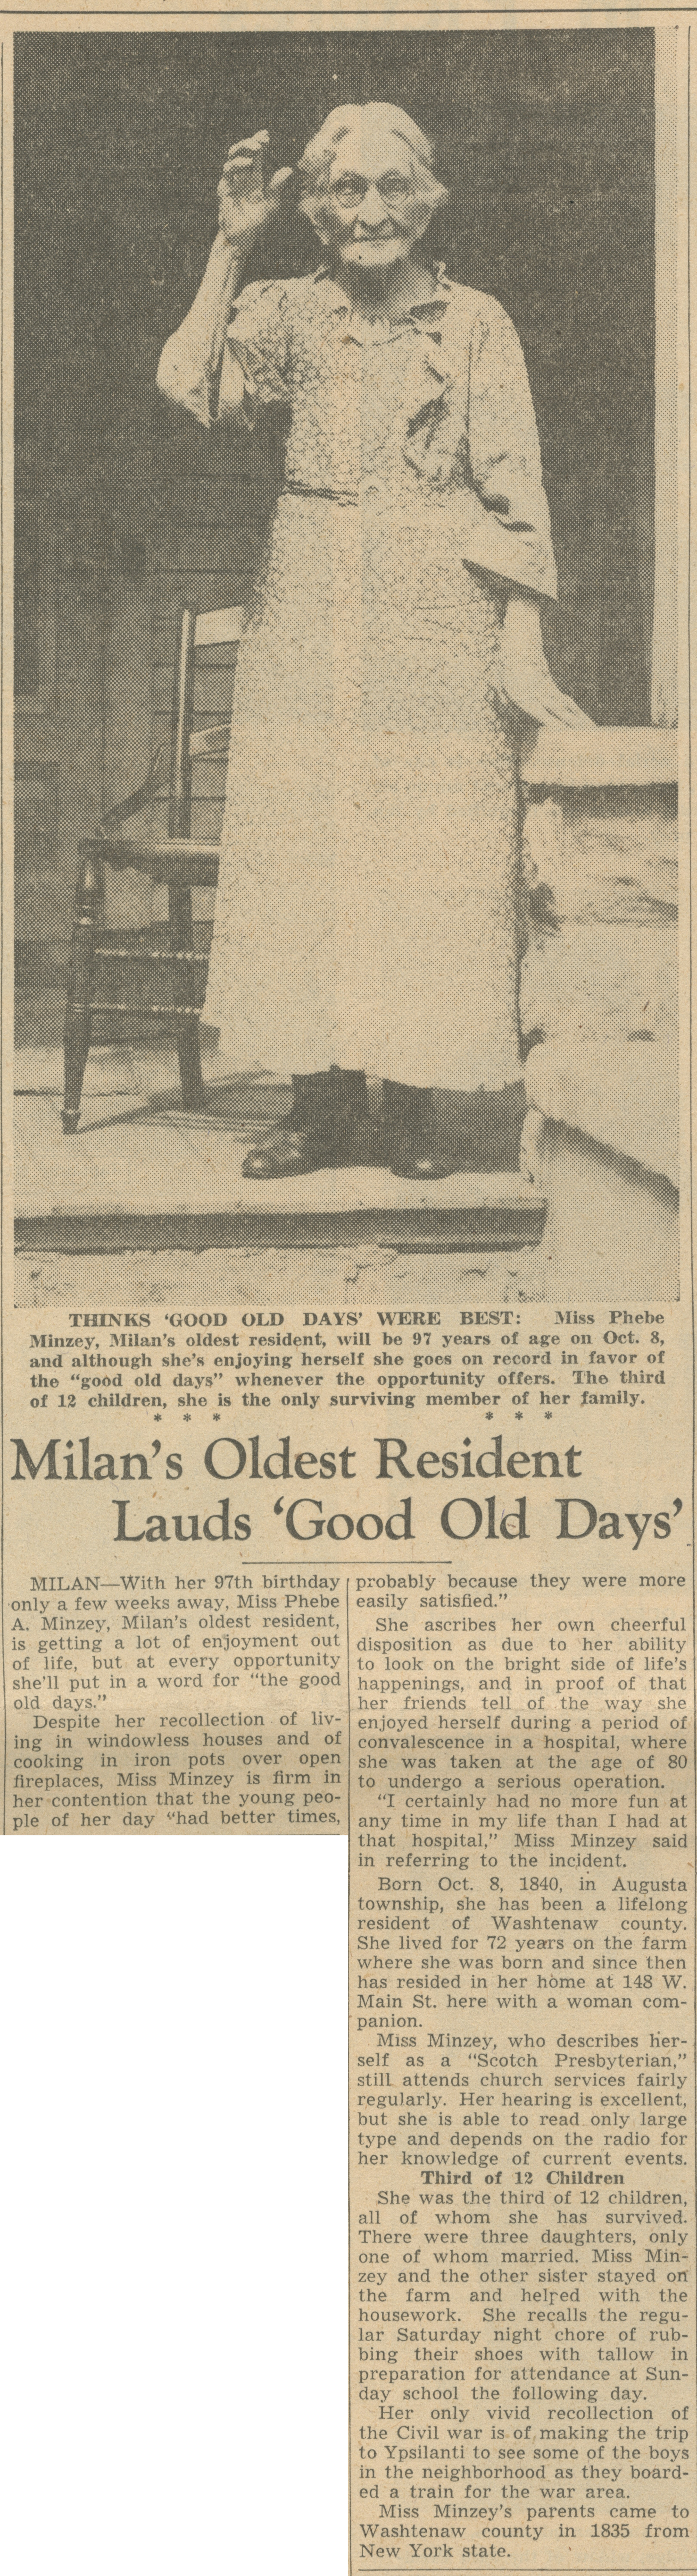 Milan's Oldest Resident Lauds 'Goods Old Days' image